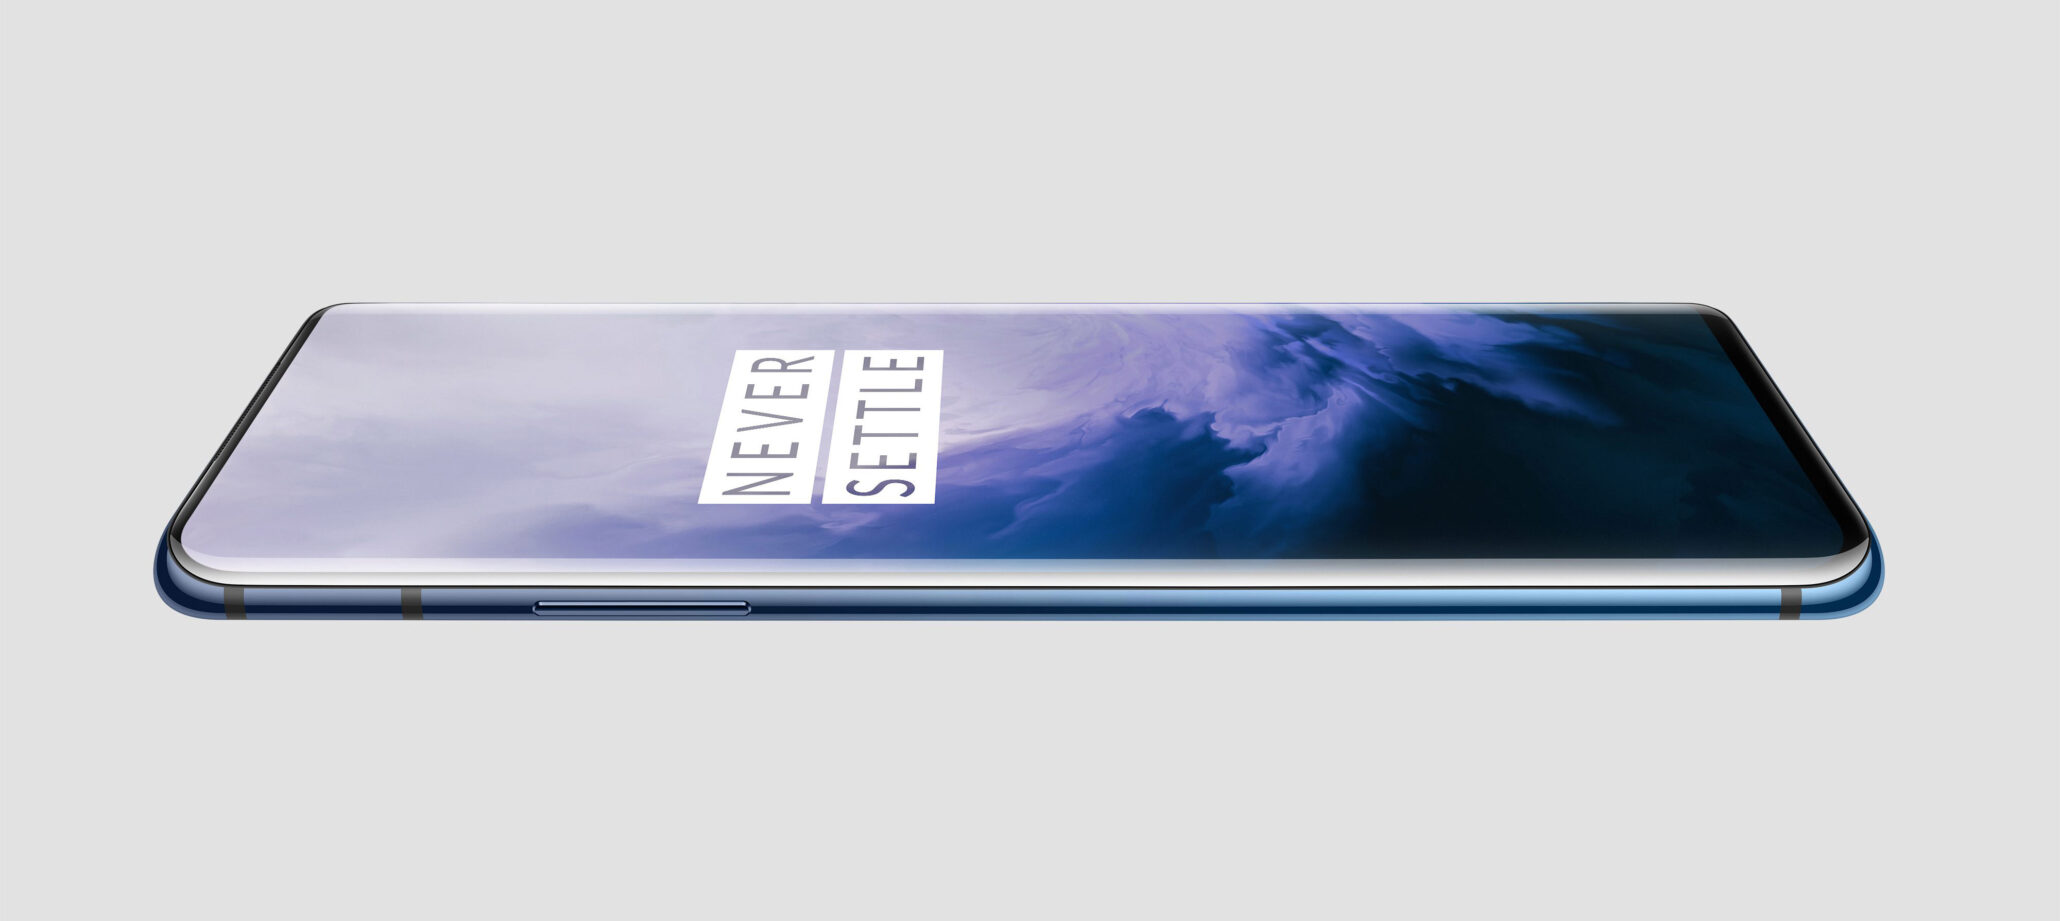 OnePlus 7 Pro Is Official With 'Fluid AMOLED' Screen, 93% Display